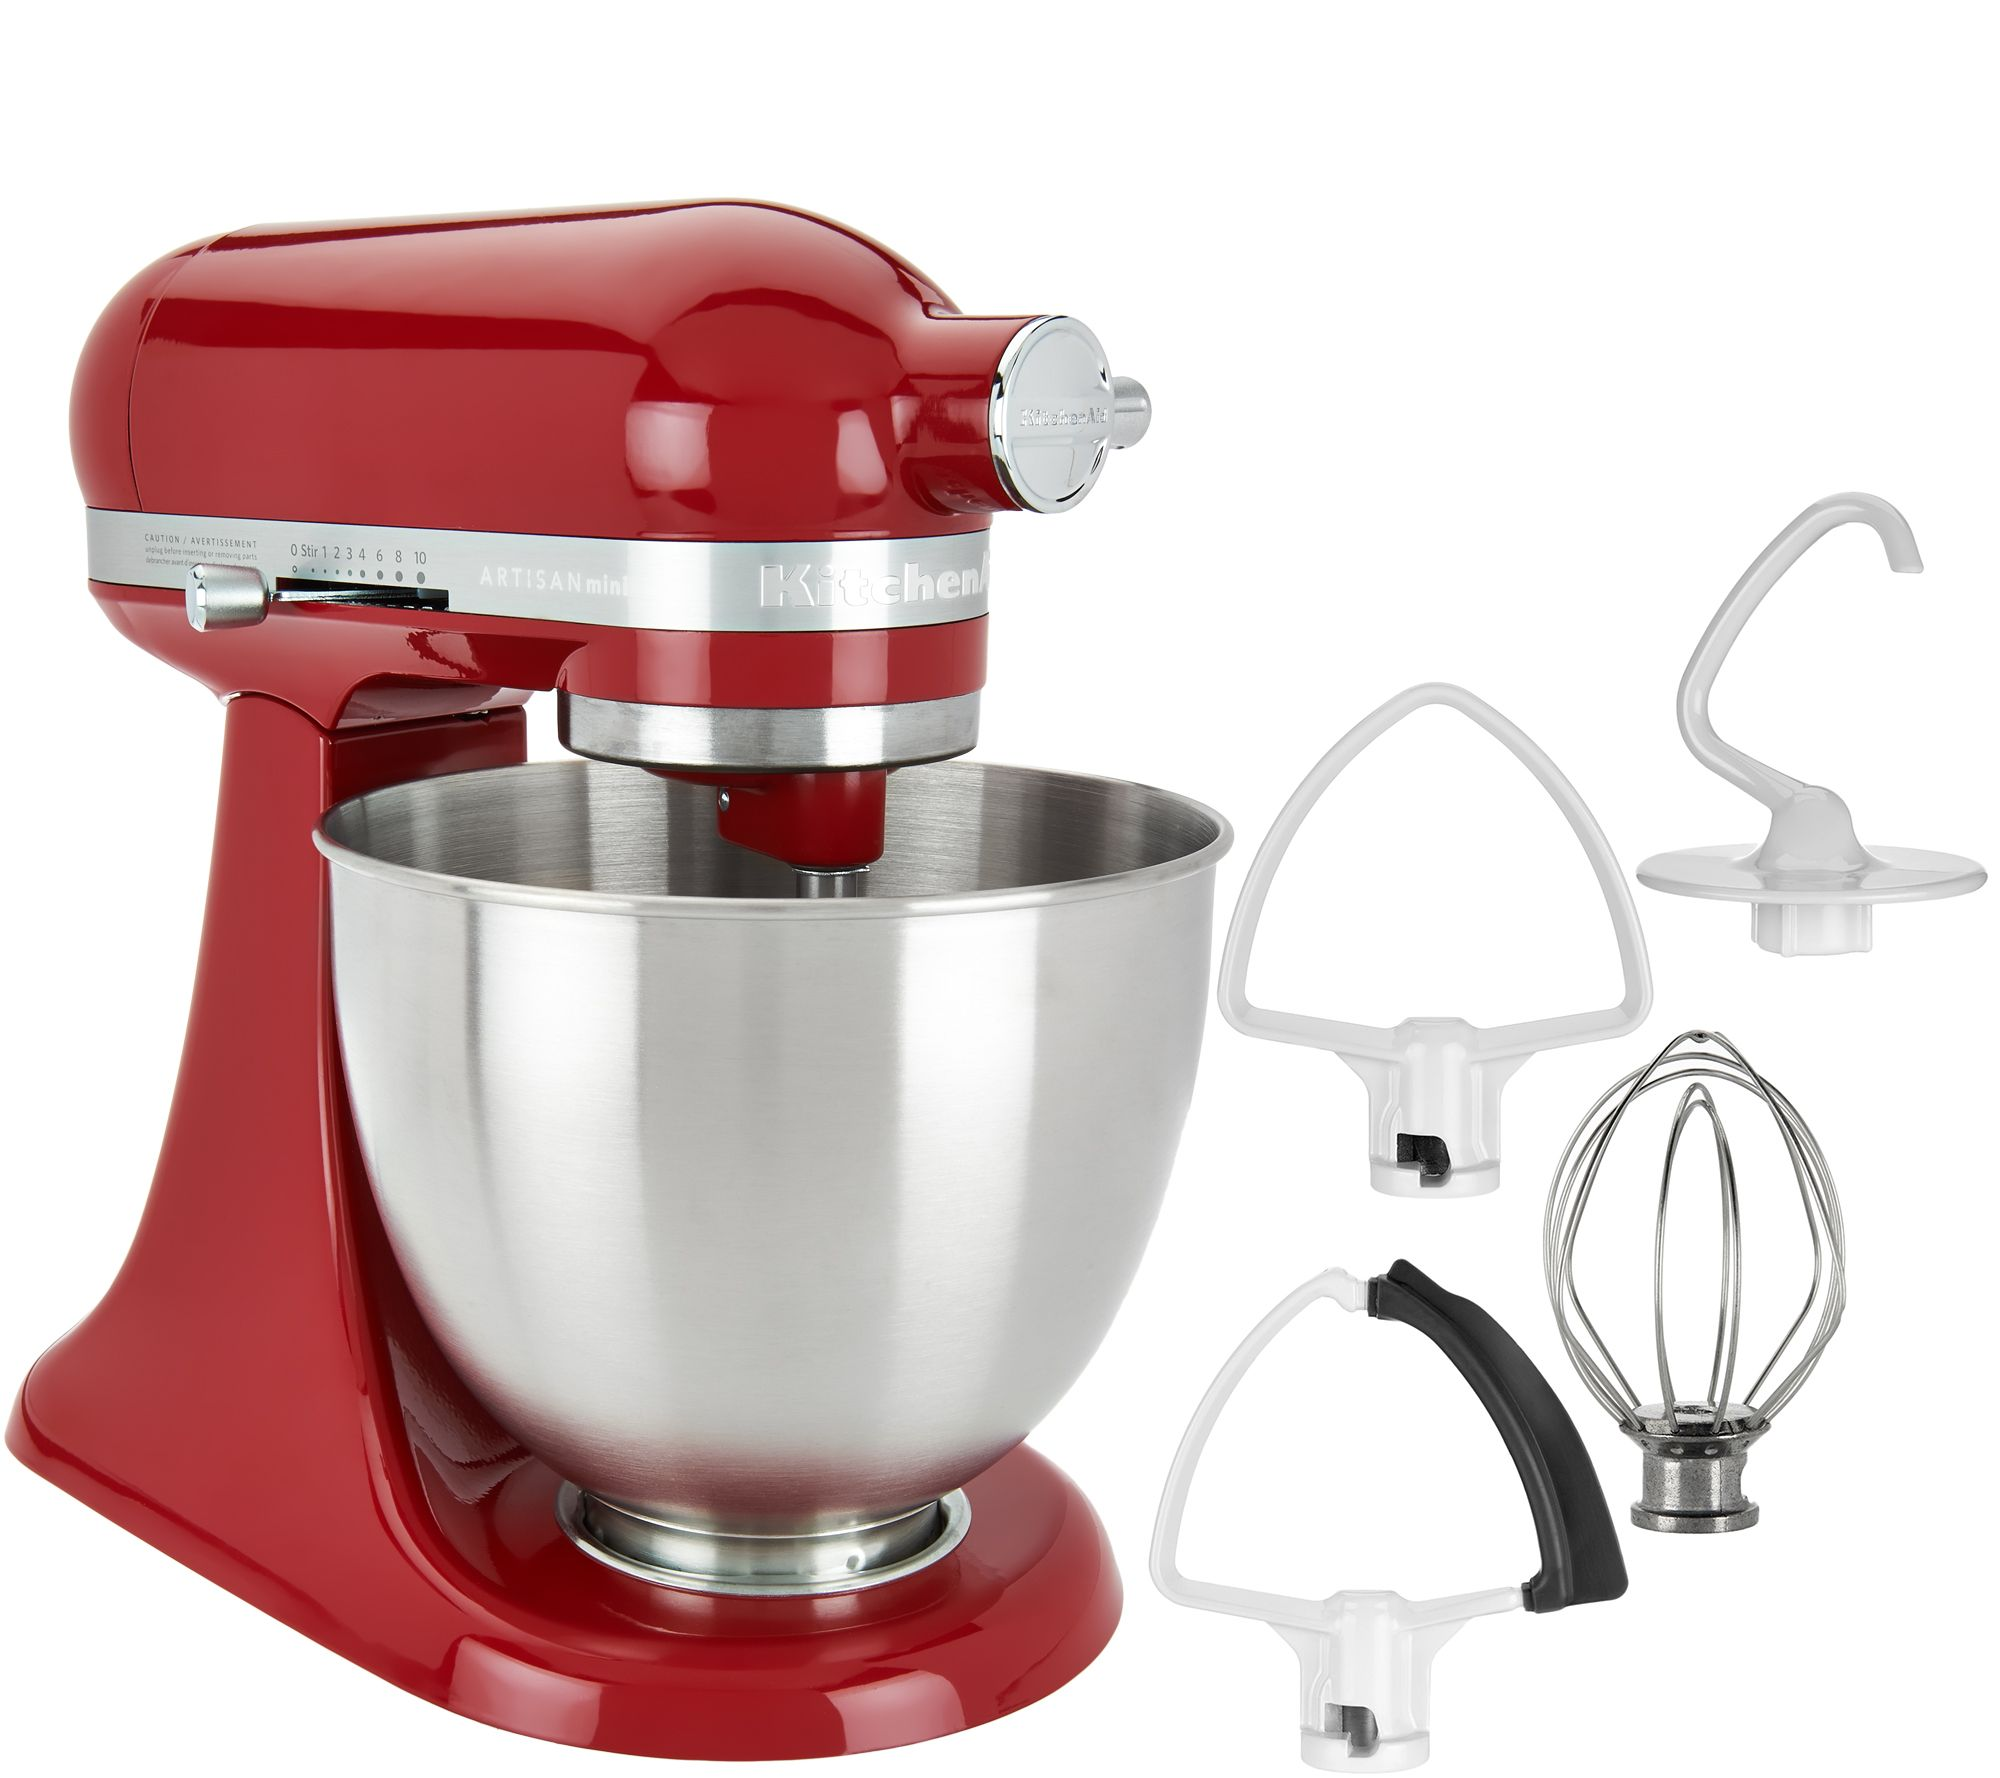 KitchenAid 3.5qt. Artisan Stand Mixer with Flex Edge Beater - Page 1 ...